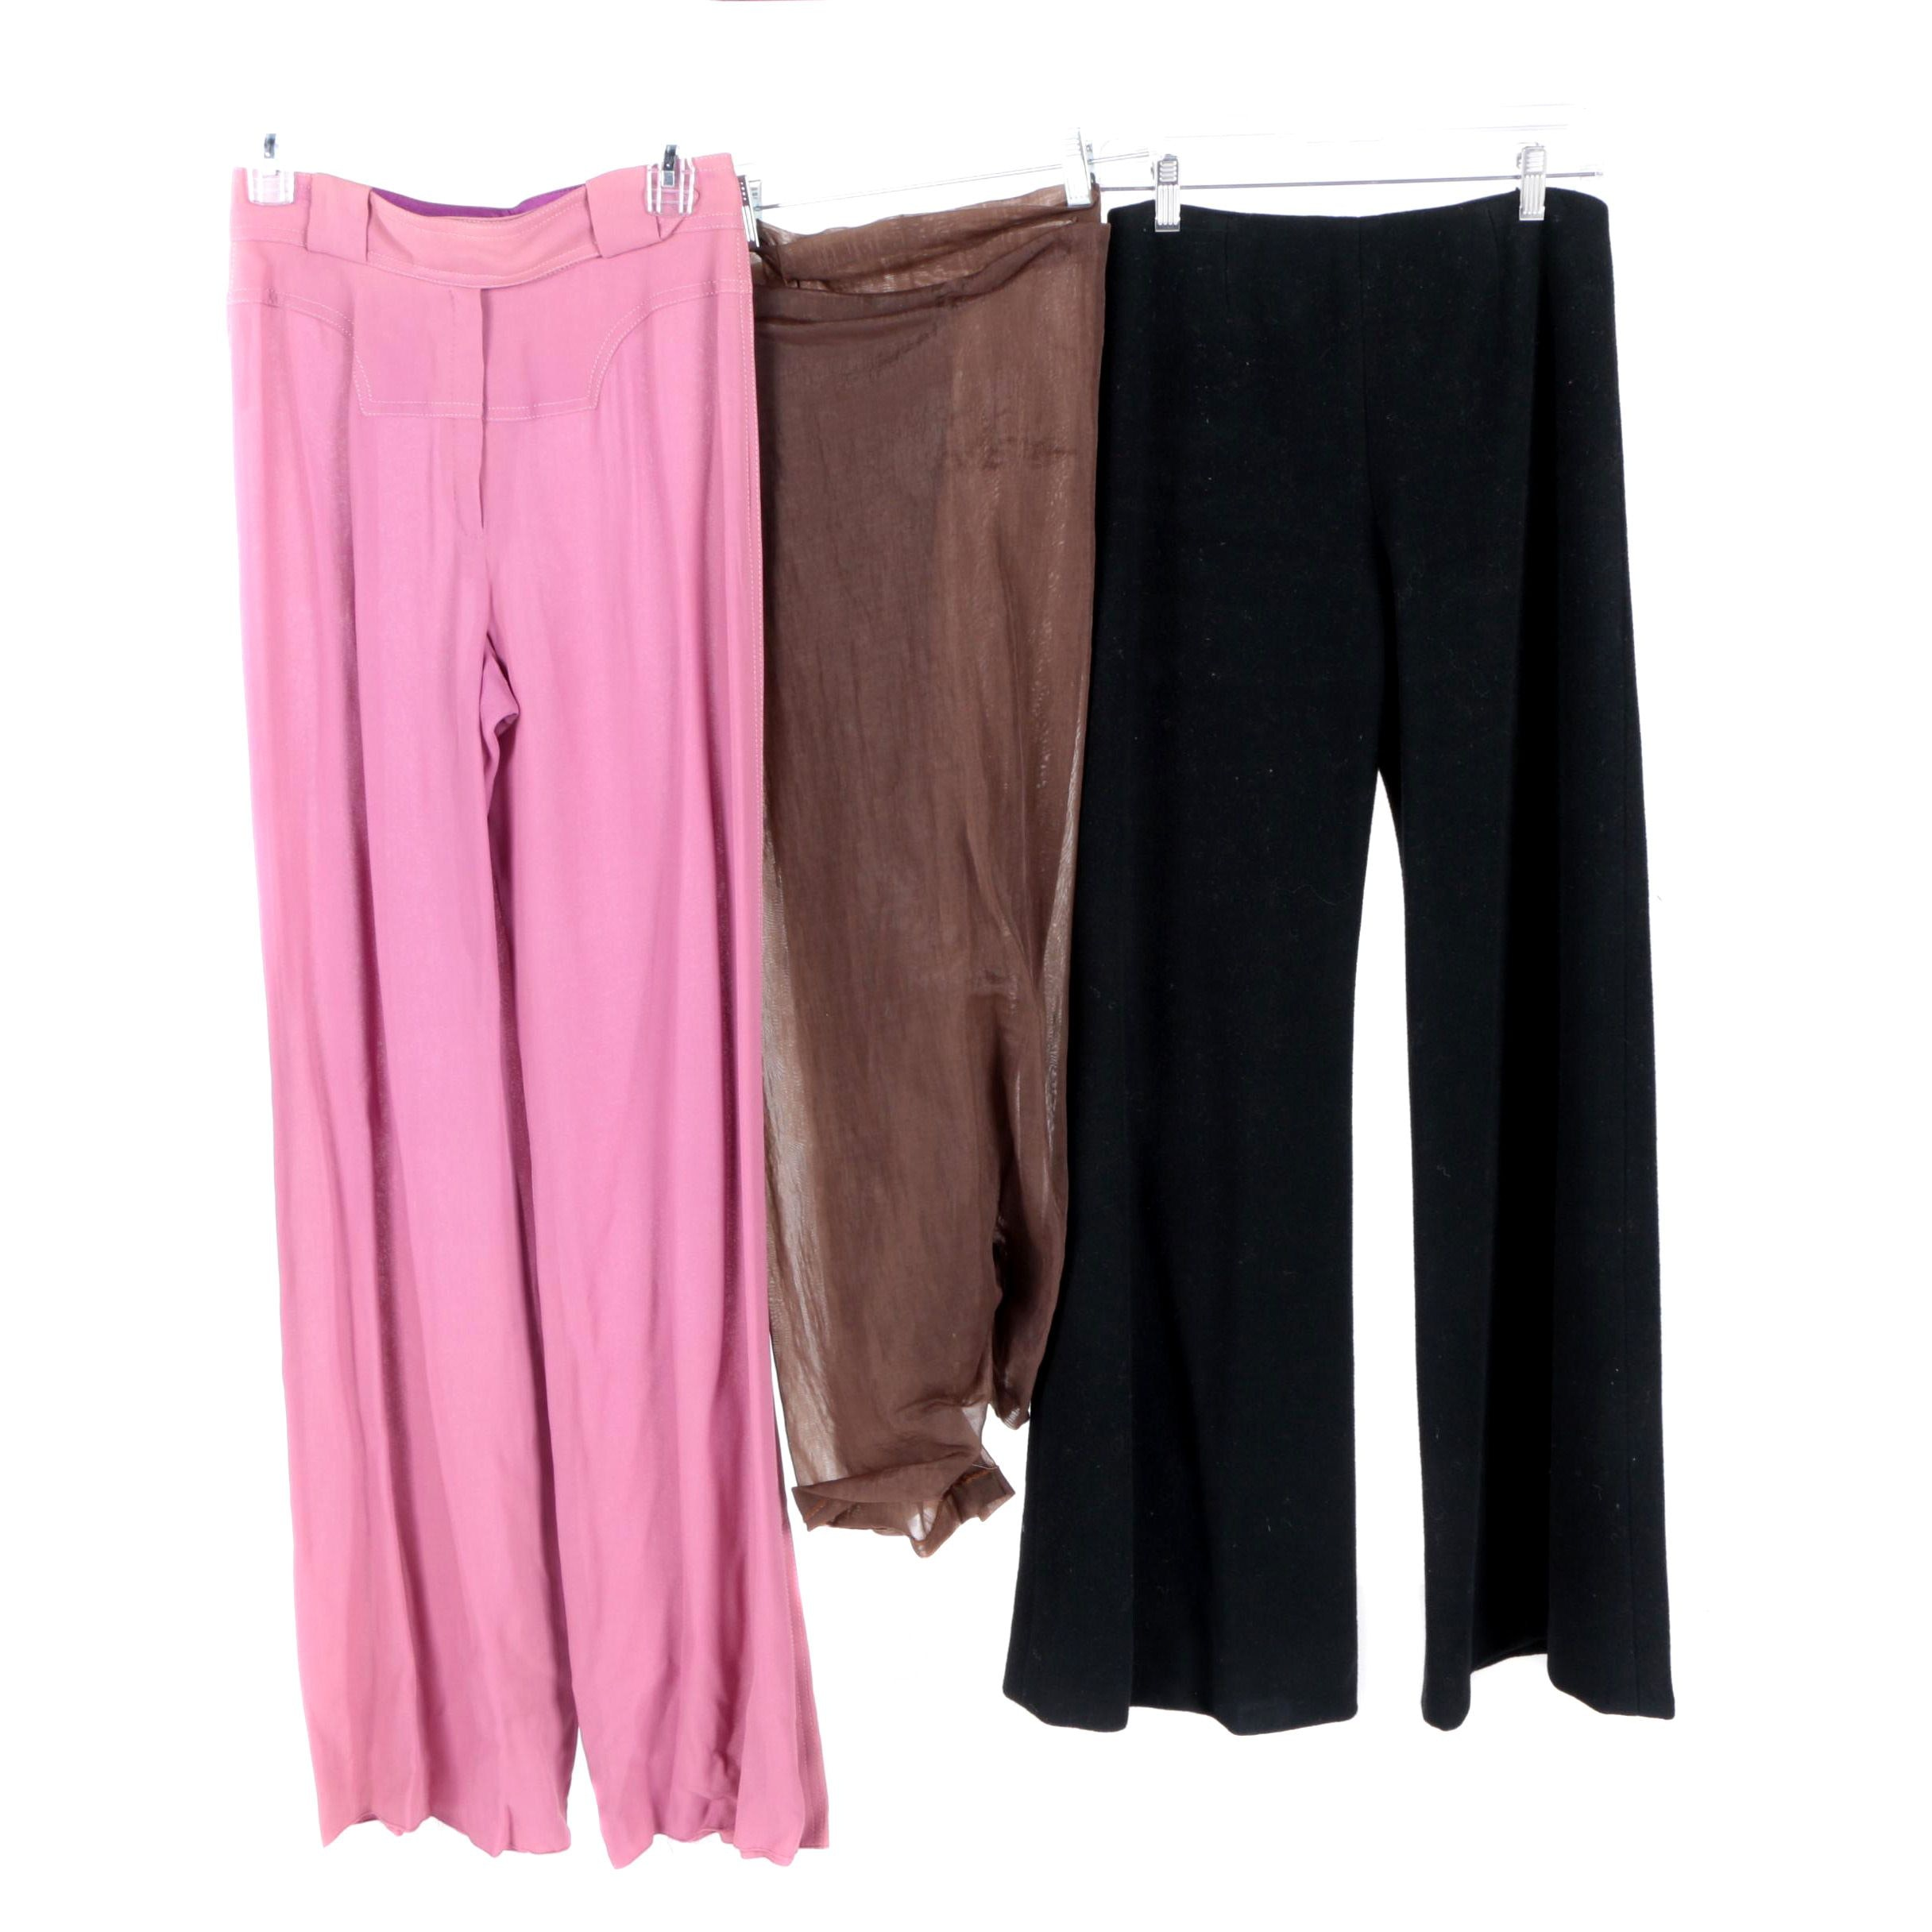 Women's Cardinali Pants and Romeo Gigli Dress